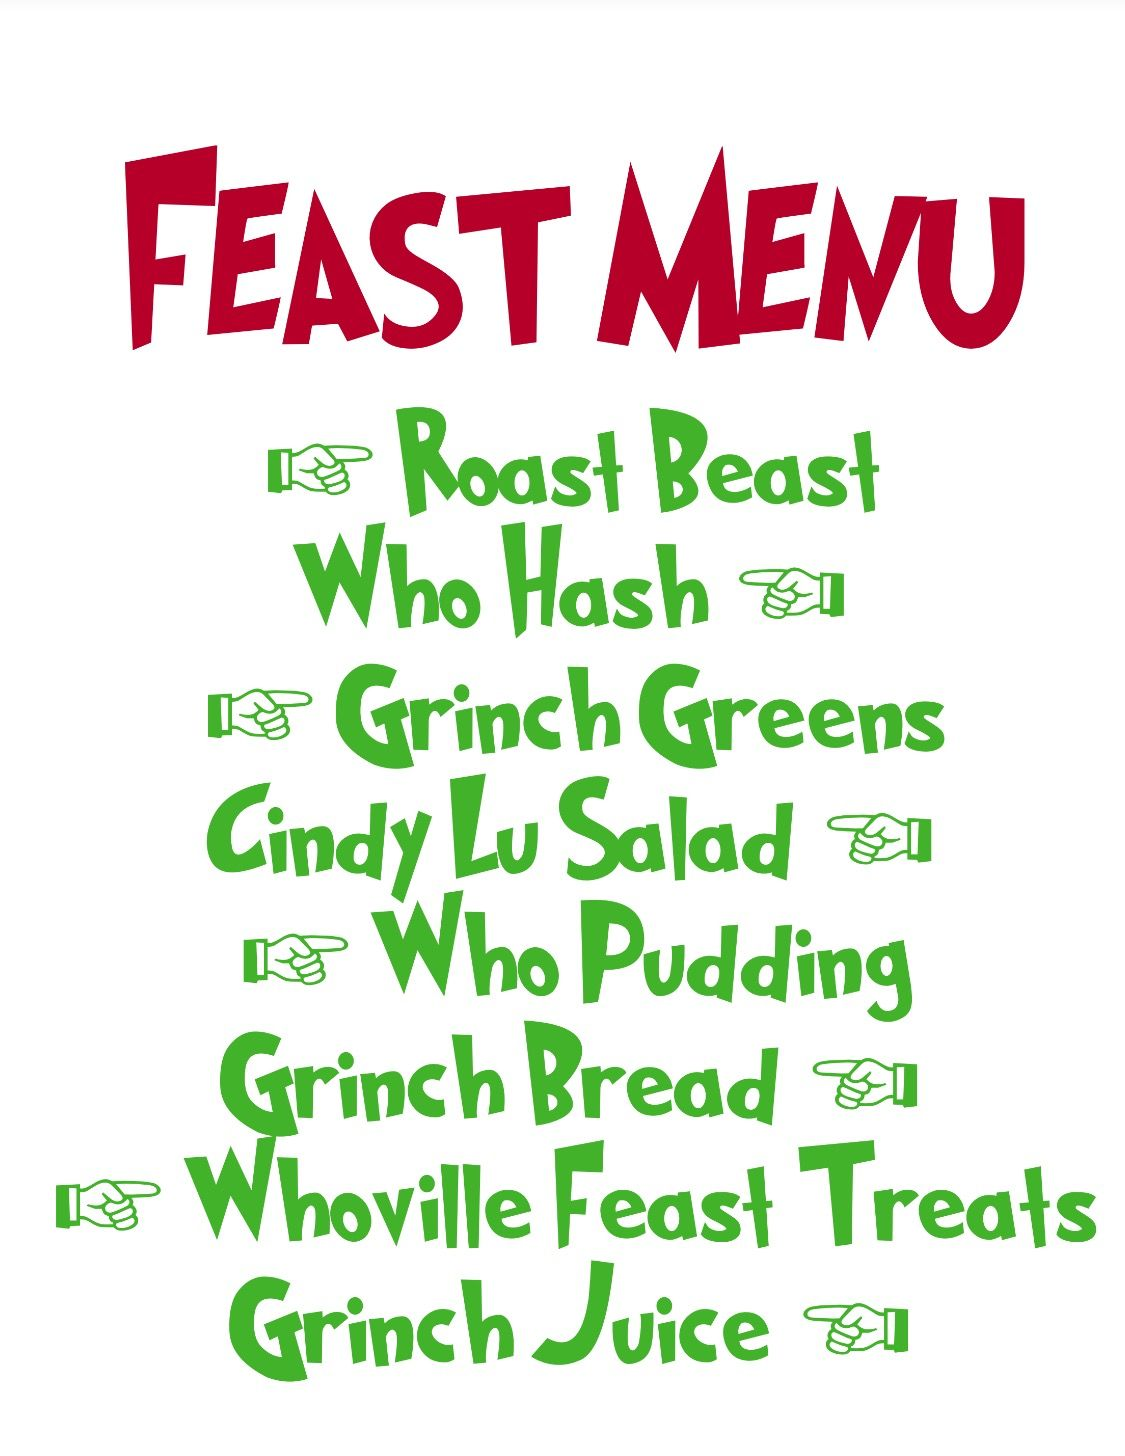 Dr Seuss How The Grinch Stole Christmas Lunch Dinner Menu For Church Party That My Husband And I Made We Had Fun Making It